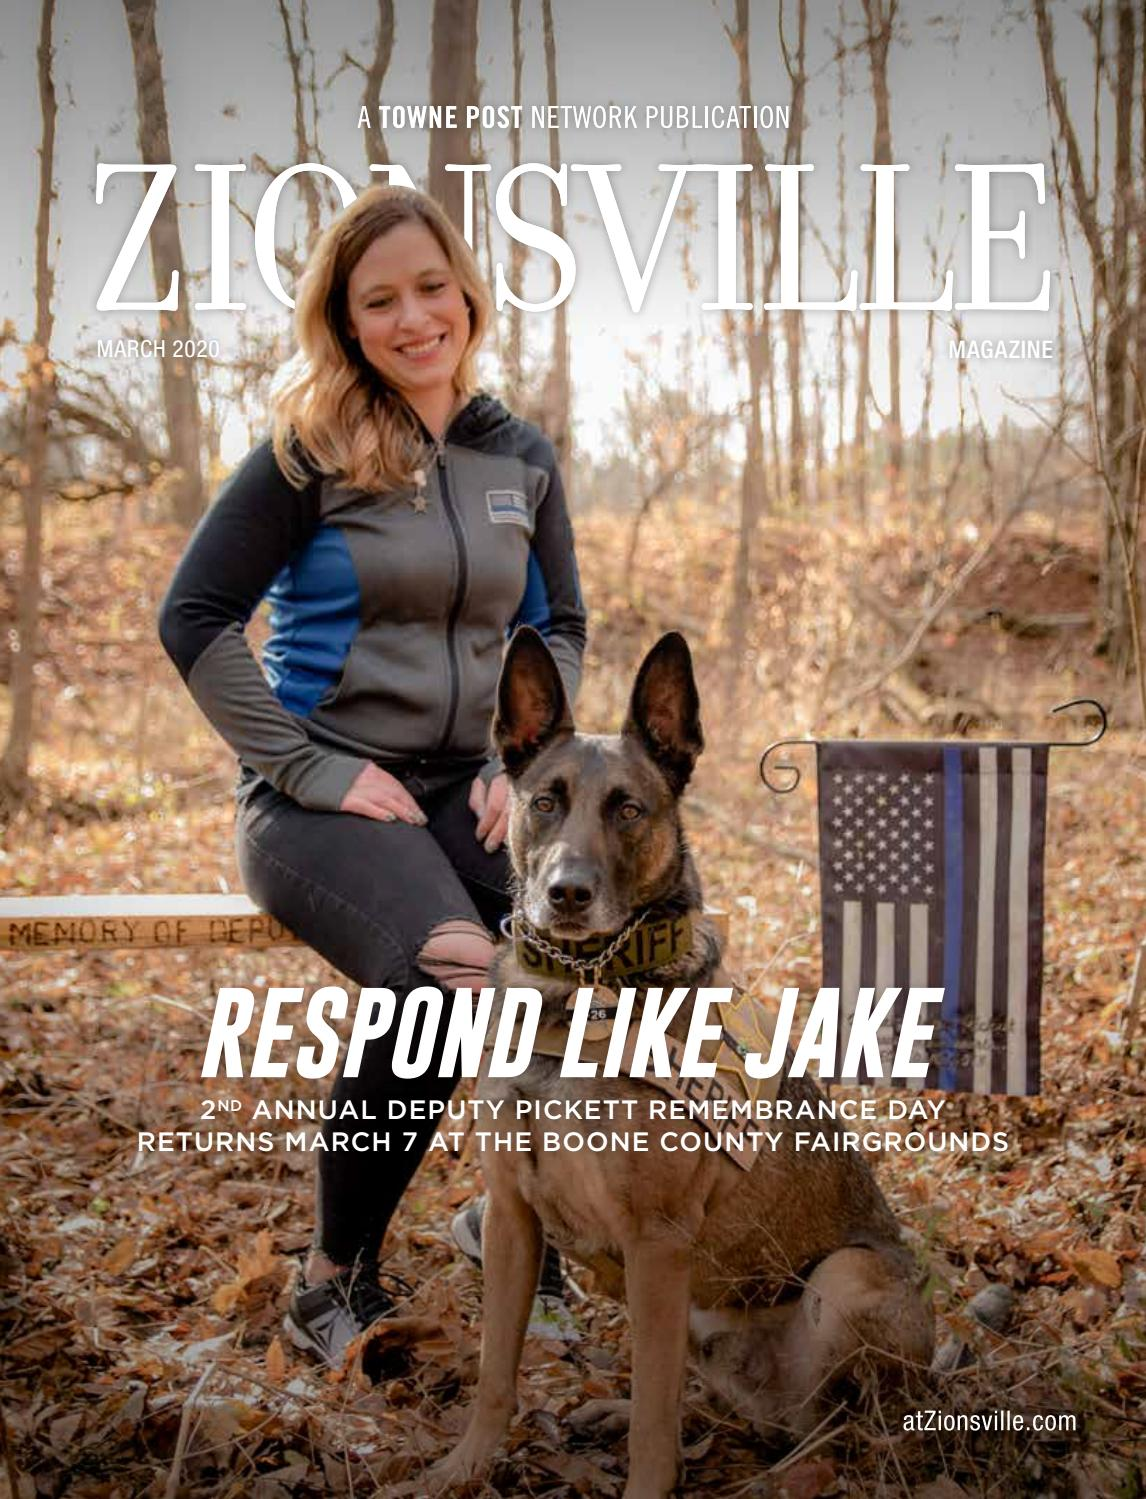 Zionsville Magazine March 2020 by Towne Post Network, Inc.   issuu